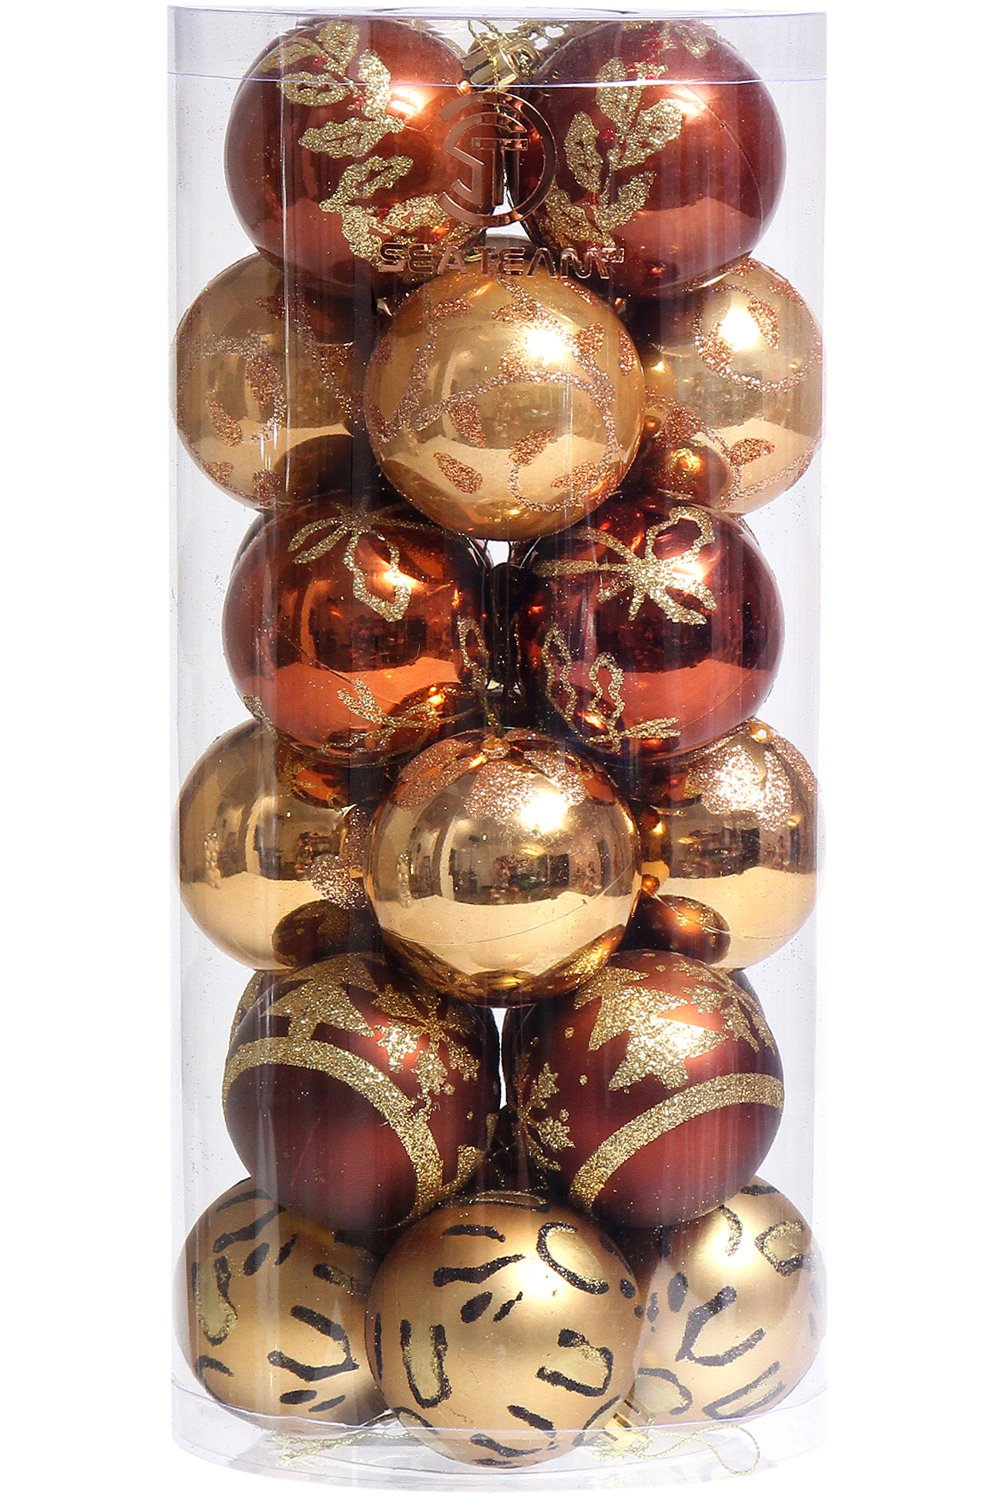 Sea Team 60mm/2.36'' Delicate Contrast Color Theme Painting & Glittering Christmas Tree Pendants Decorative Hanging Christmas Baubles Balls Ornaments Set - 24 Pieces (Gold & Bronze)